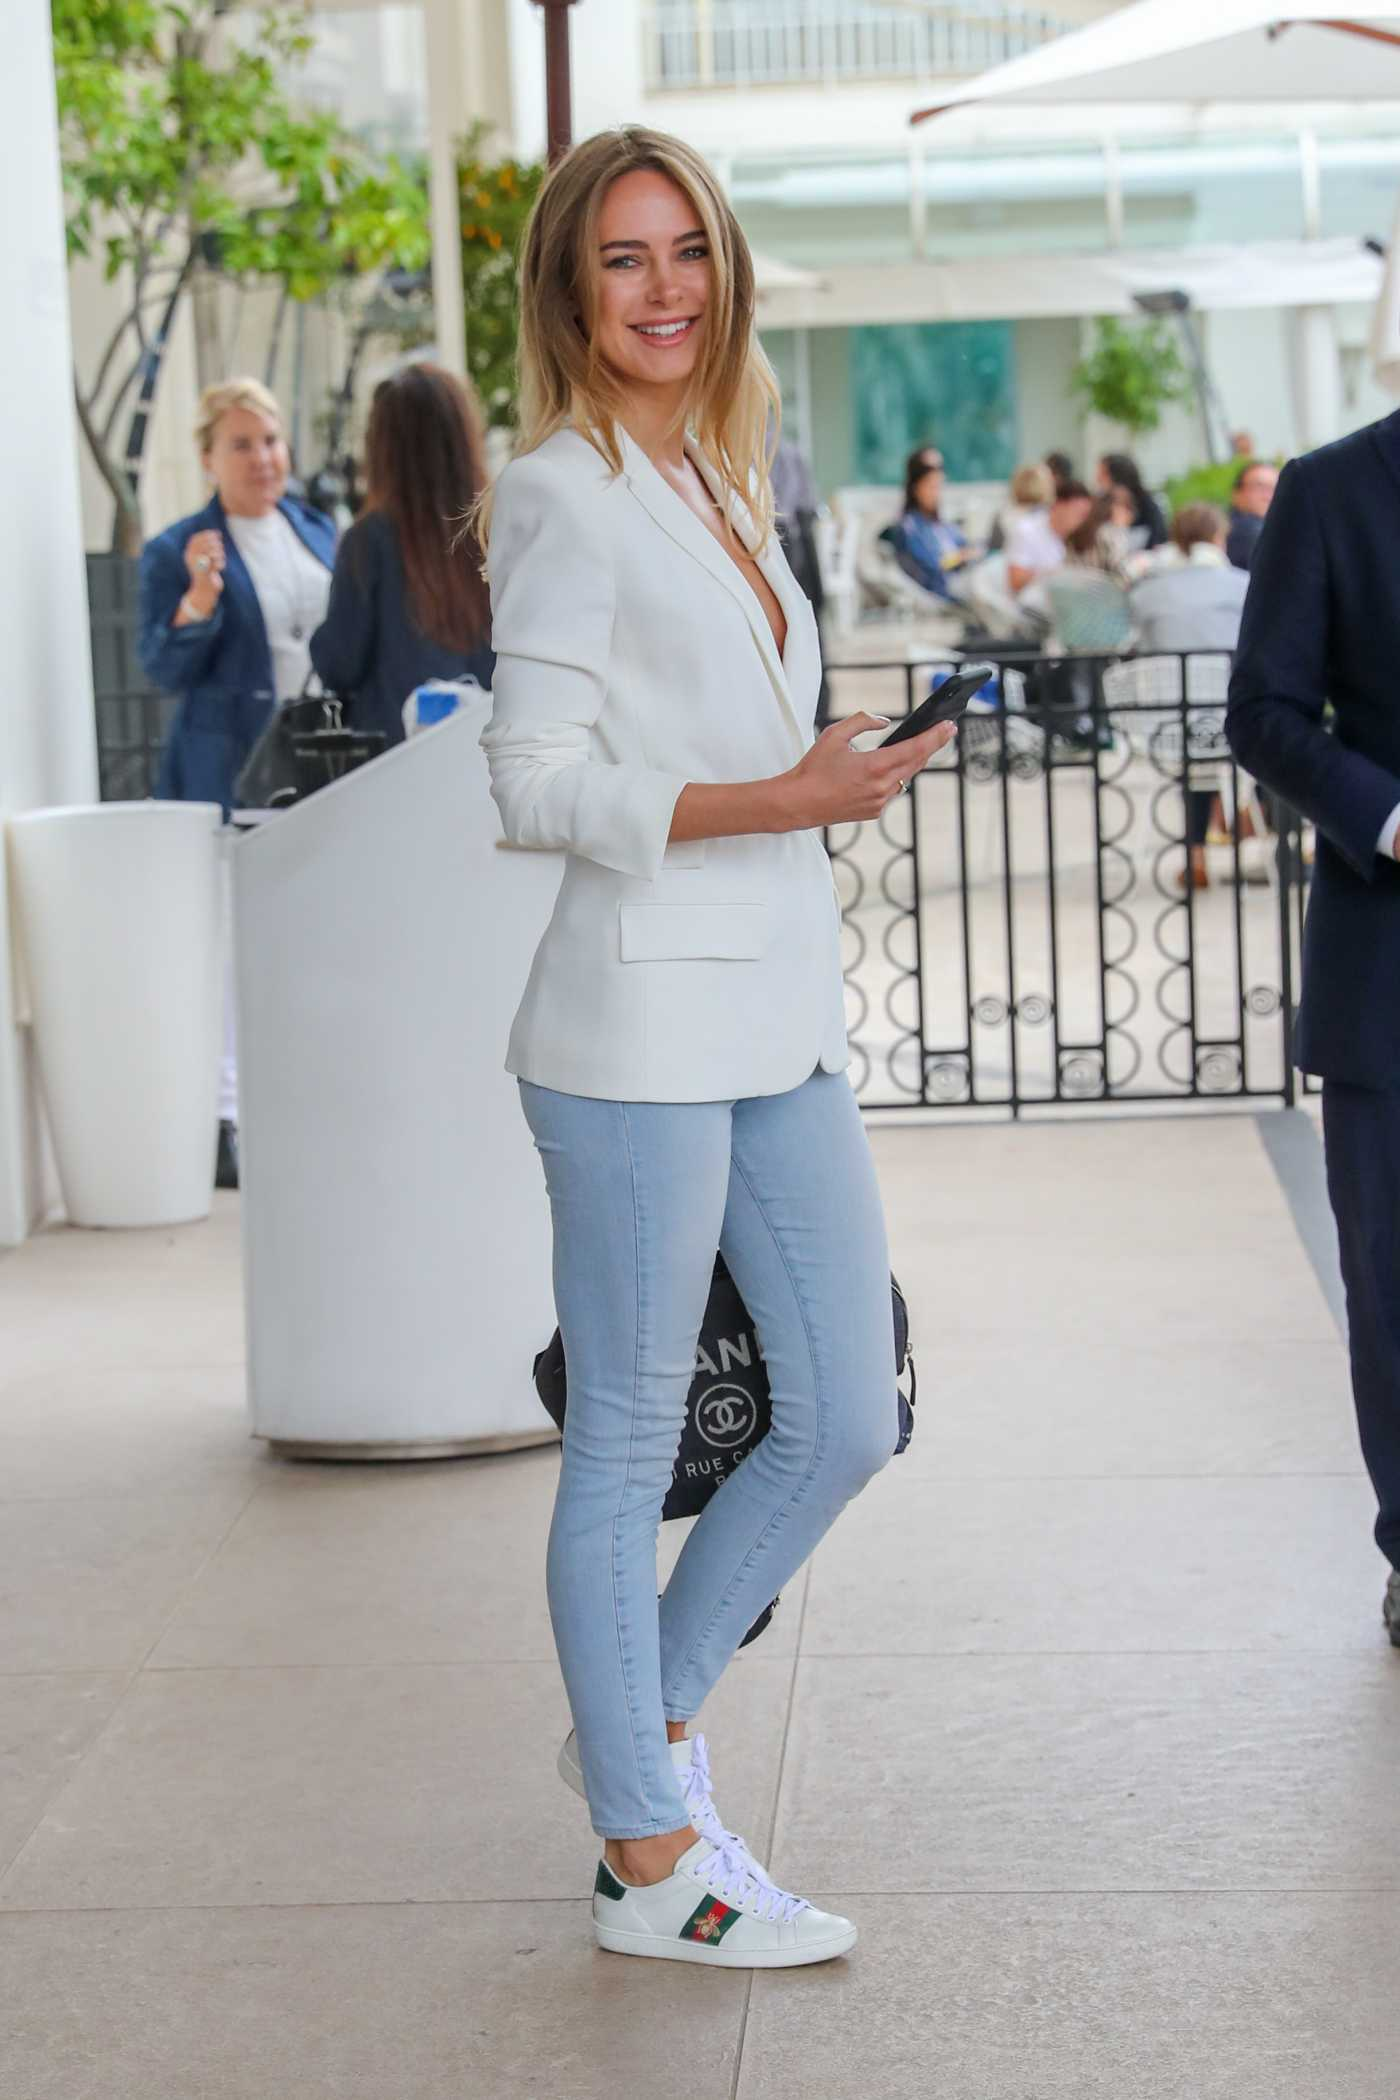 Kimberley Garner in a White Blazer Leaves the Martinez Hotel During the 72nd Annual Cannes Film Festival in Cannes 05/21/2019